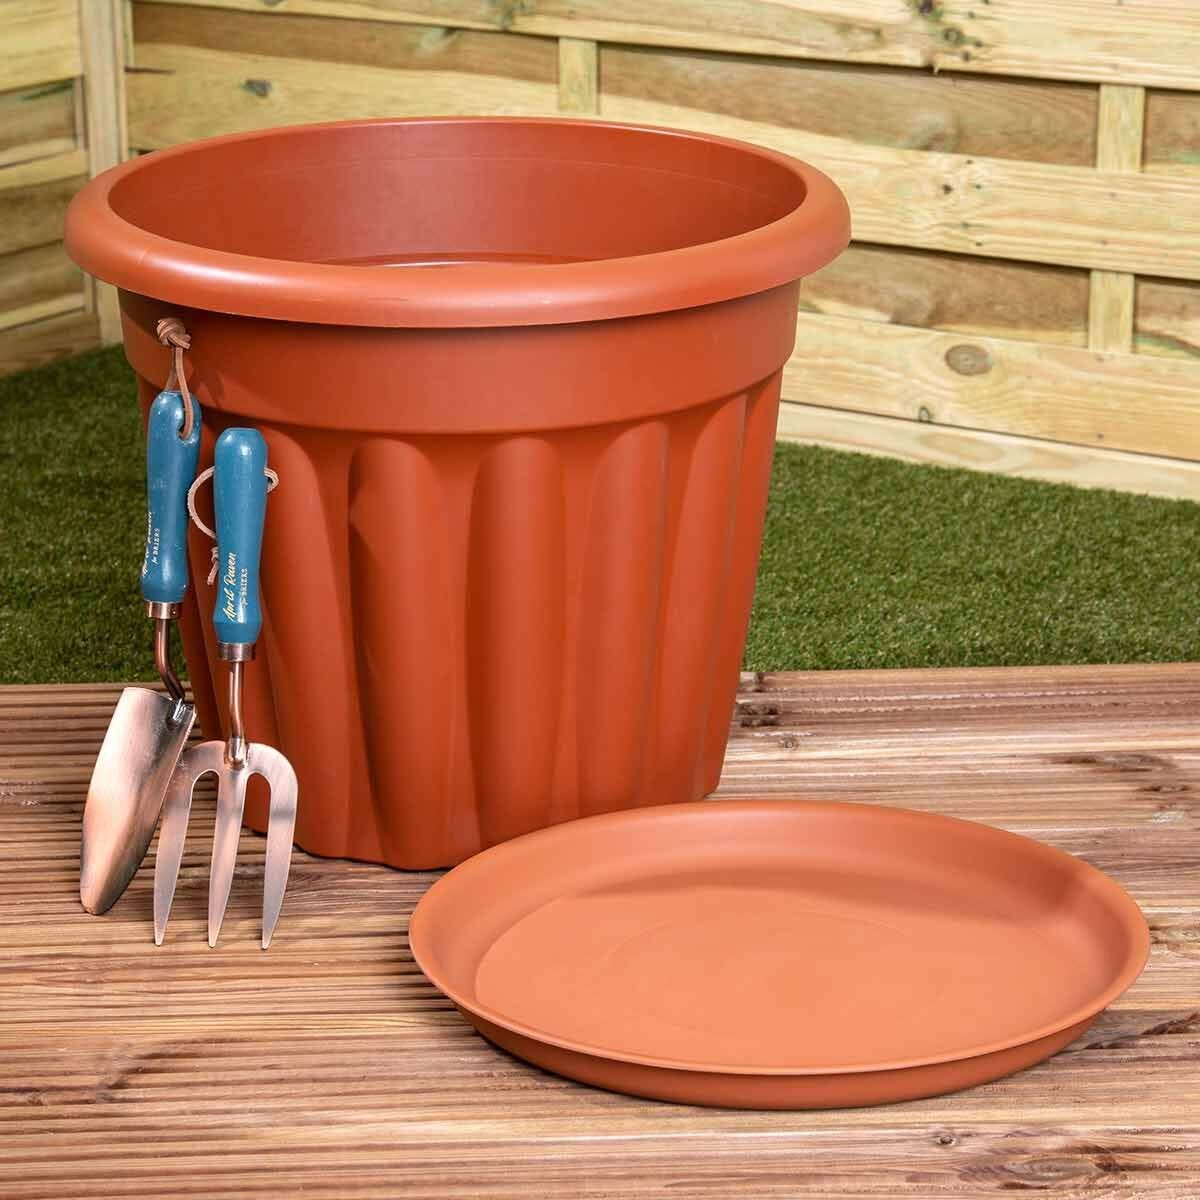 Wham Vista Traditional Planters with Trays 50cm Set of 5 Terracotta